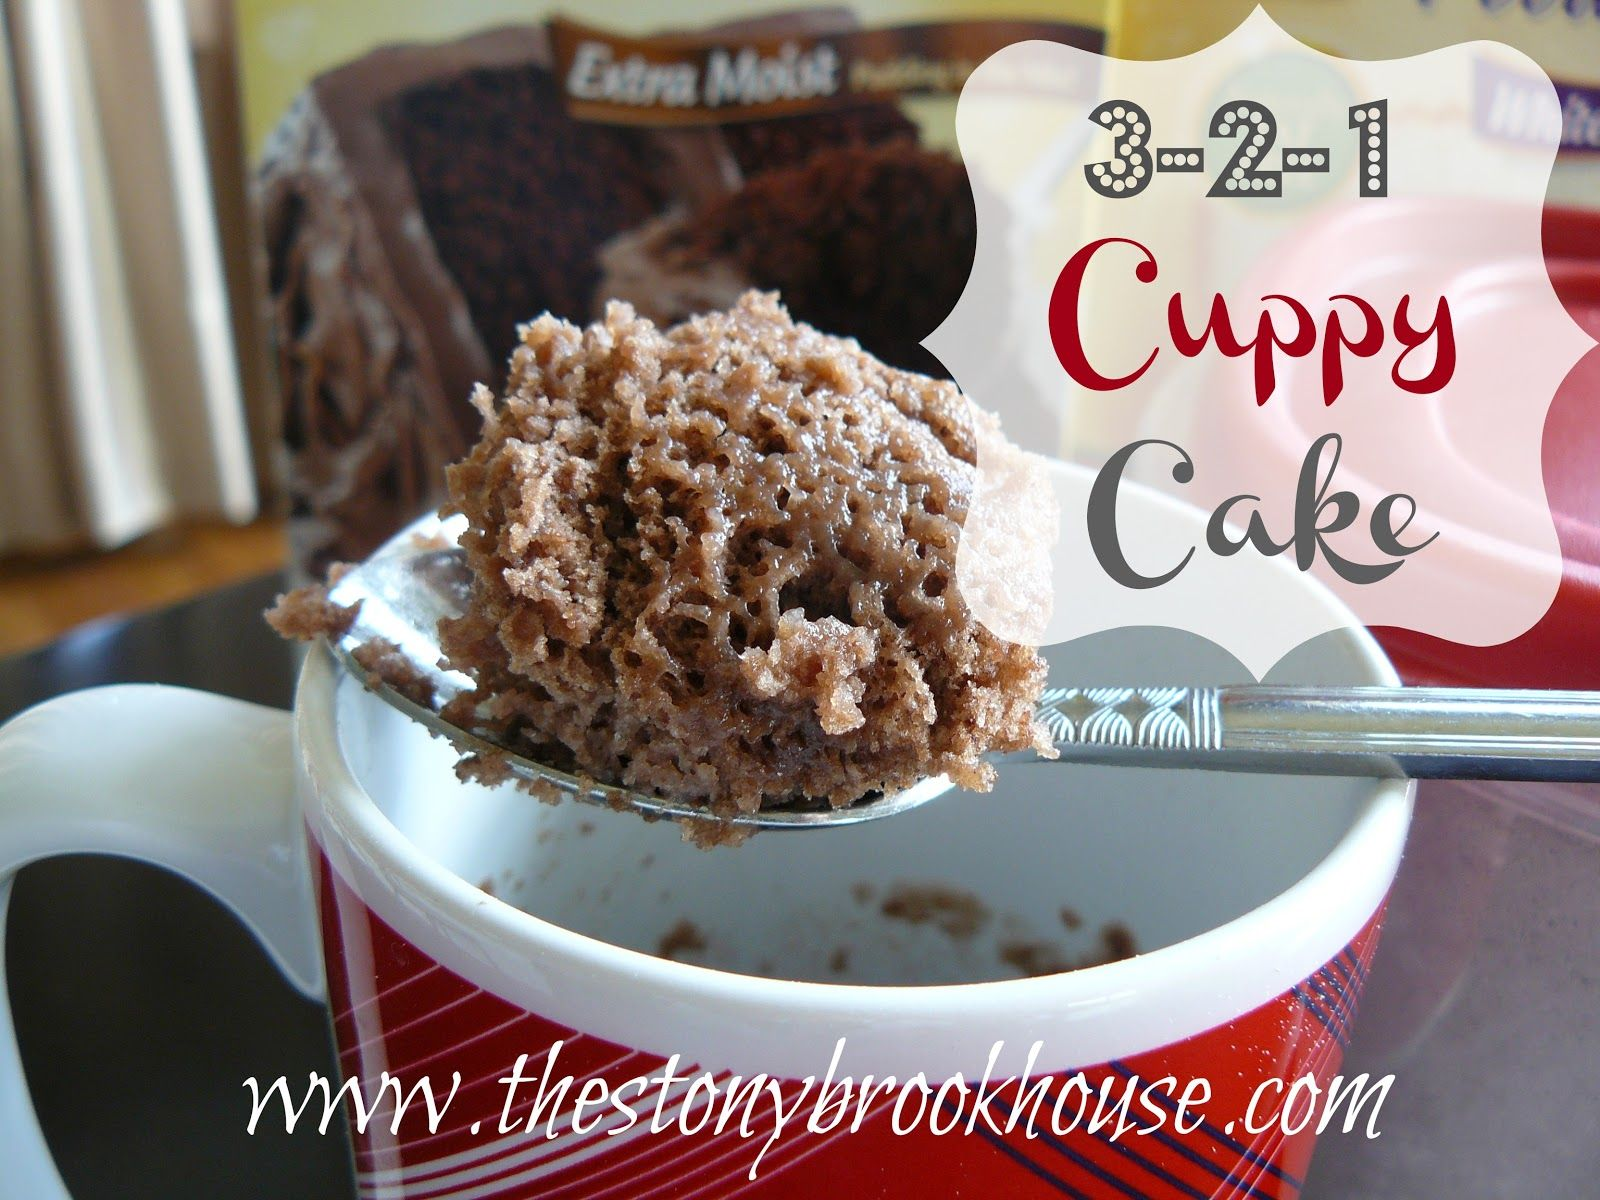 The Stonybrook House: 3-2-1 Cuppy Cake {The EASIEST Cake Ever!}